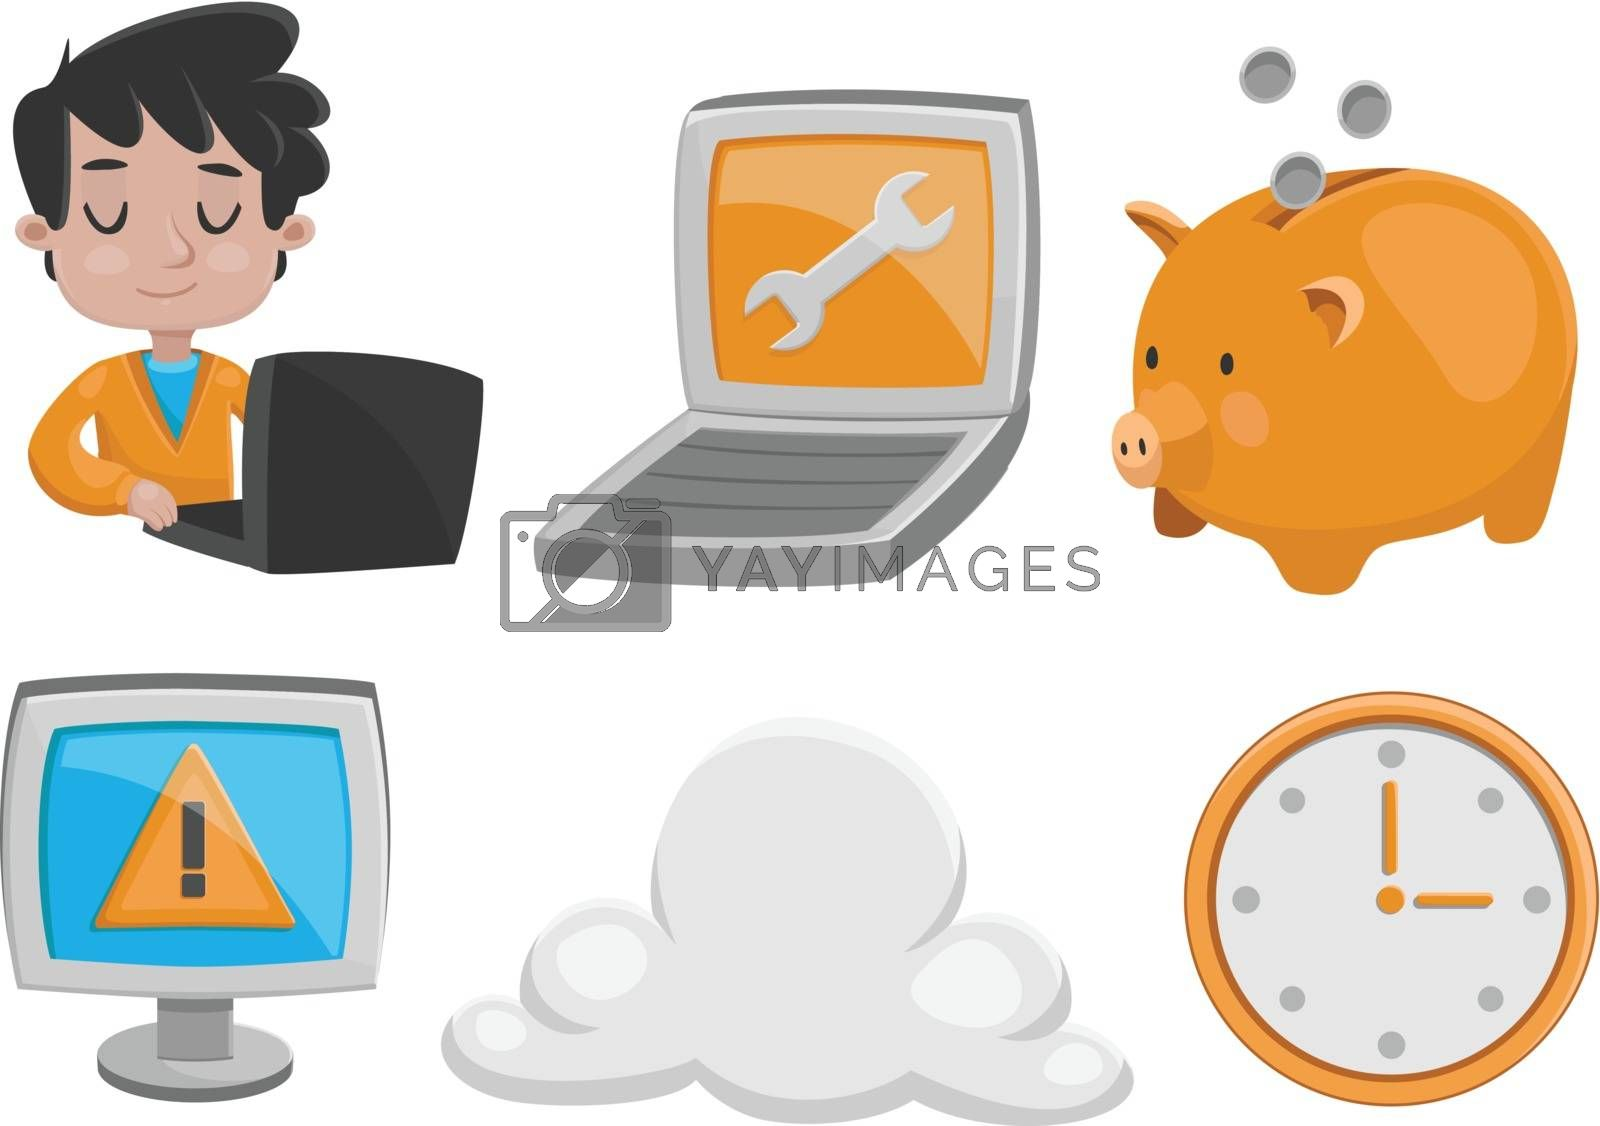 Set of vector illustrations, featuring technology.